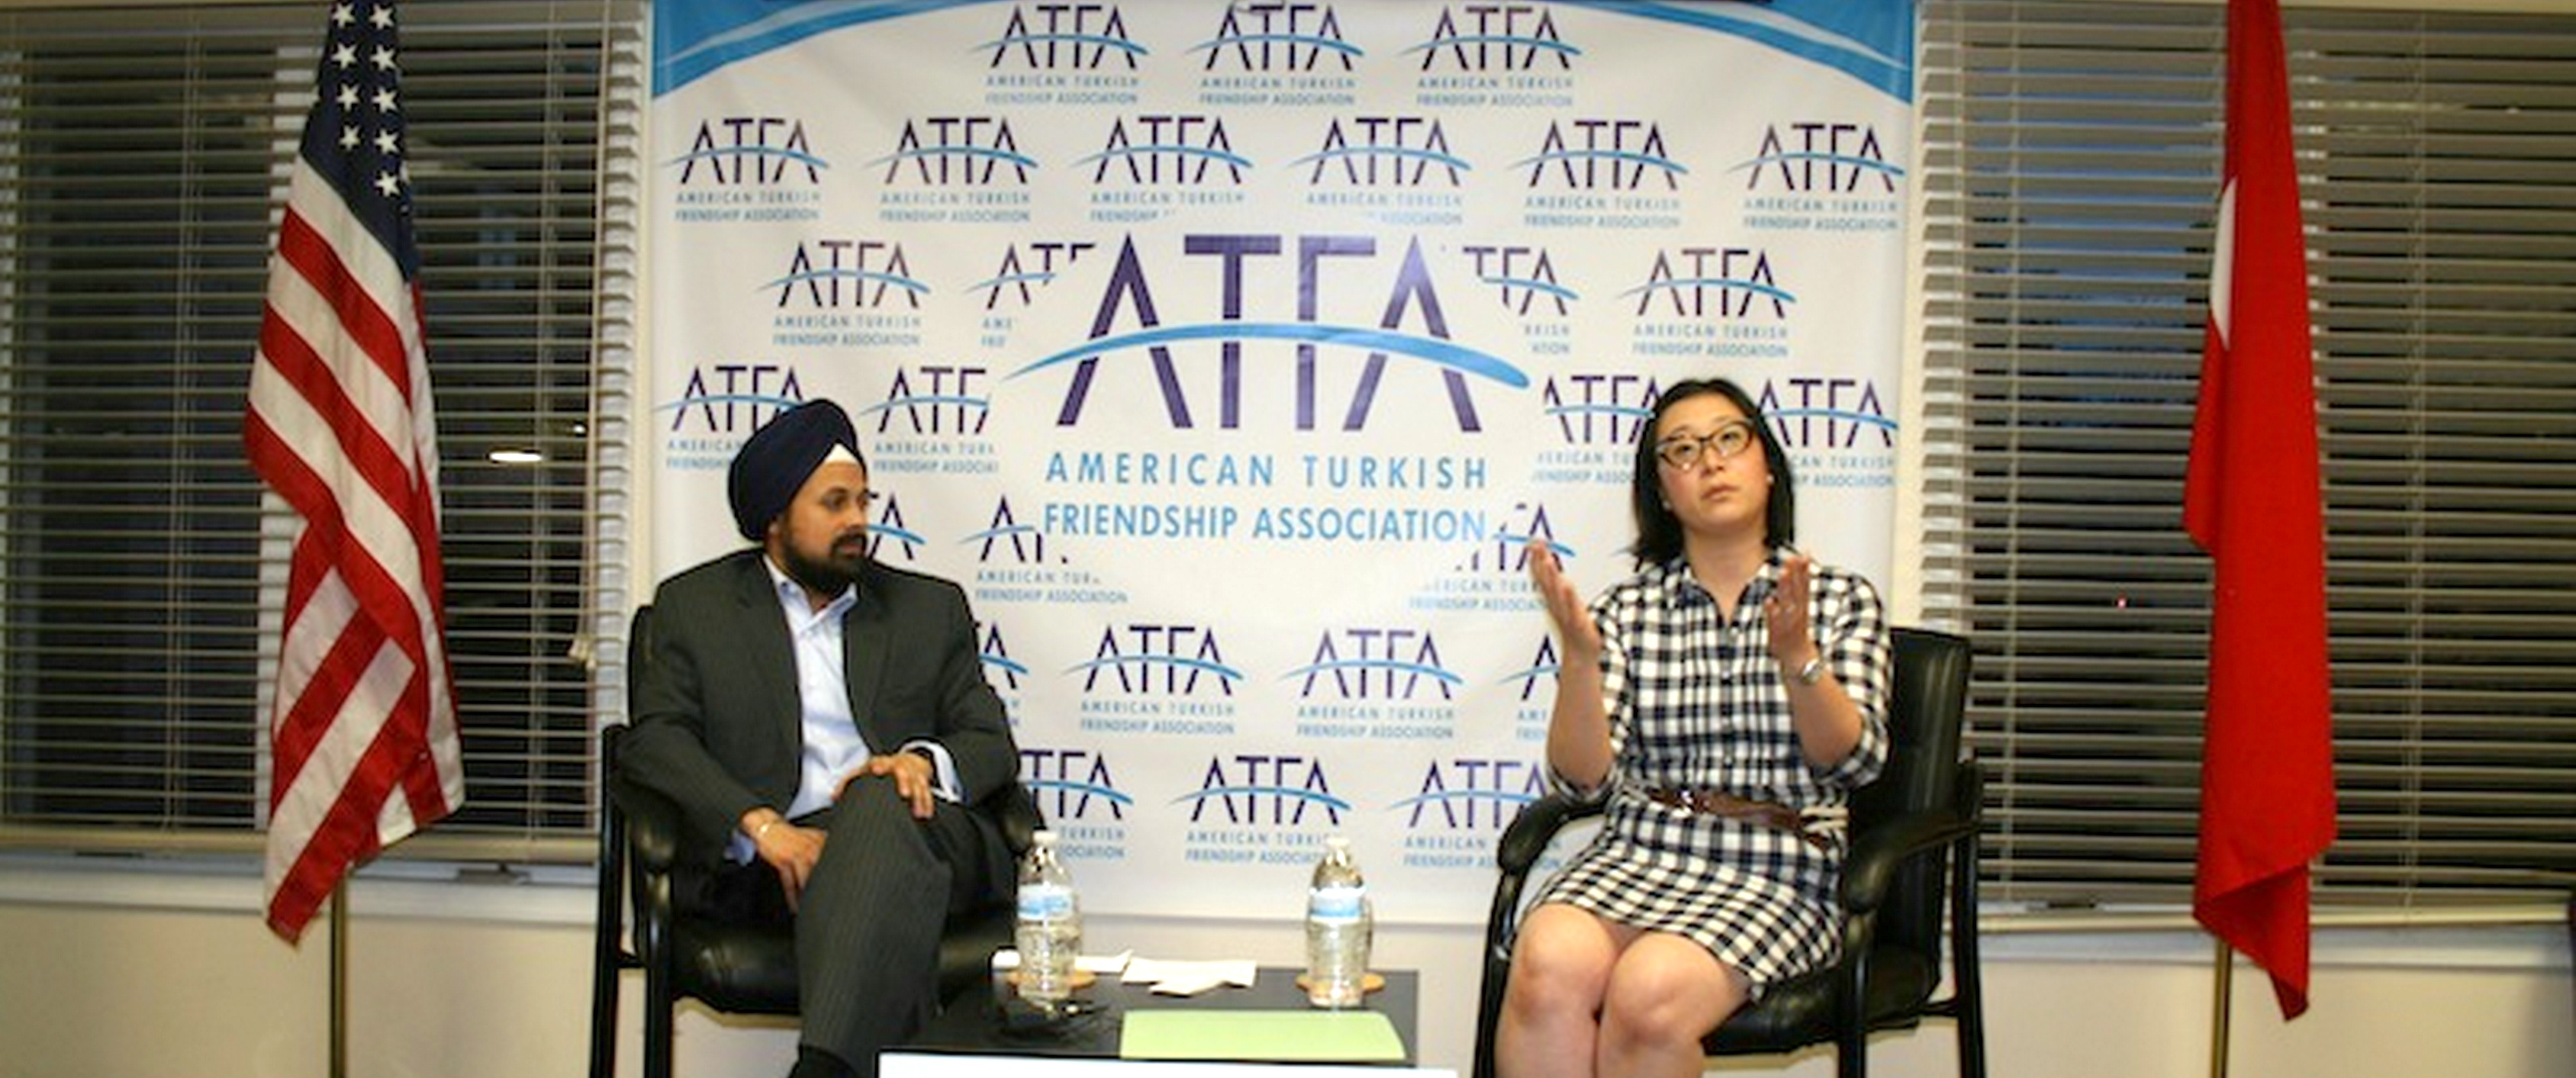 Global Initiatives in Diaspora Communities with Constance Tzioumis, State Department and Romi Bhatia